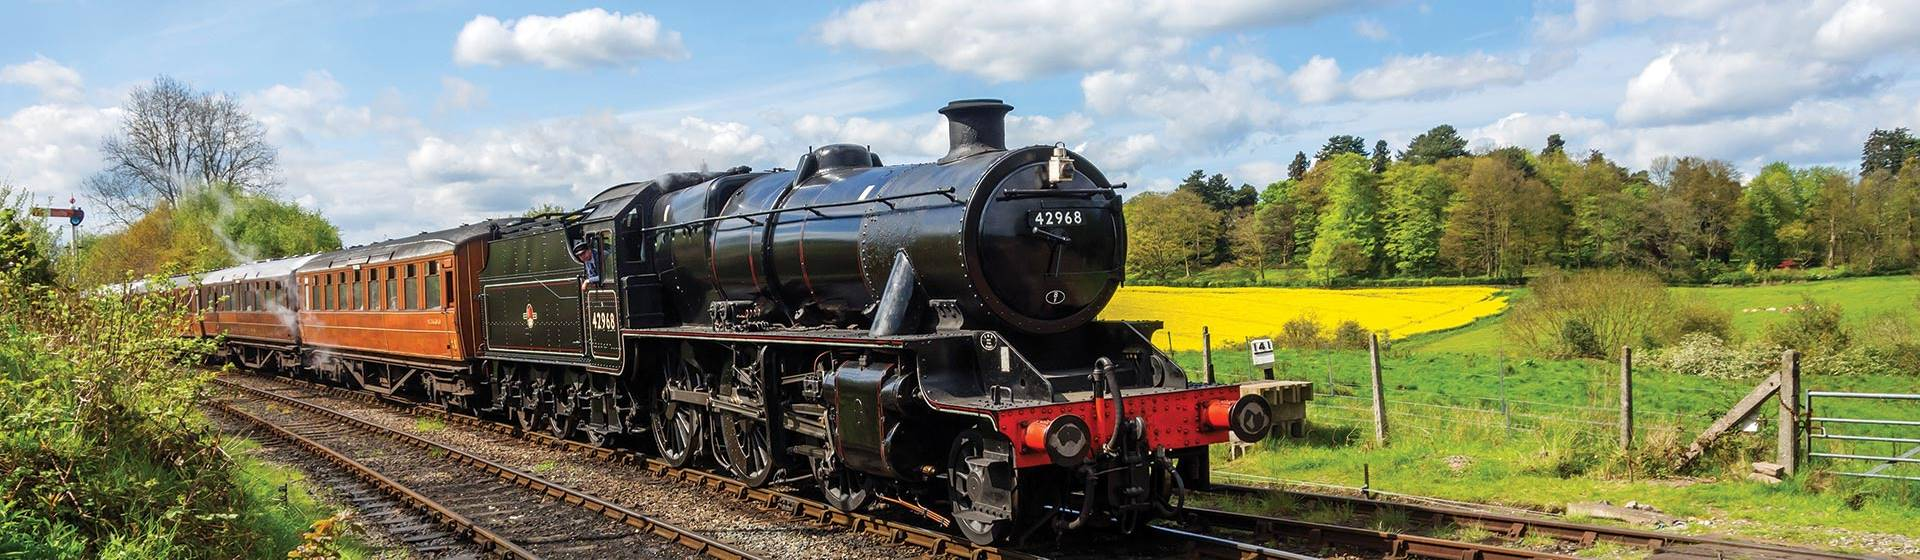 Severn Valley Railway & Shrewsbury